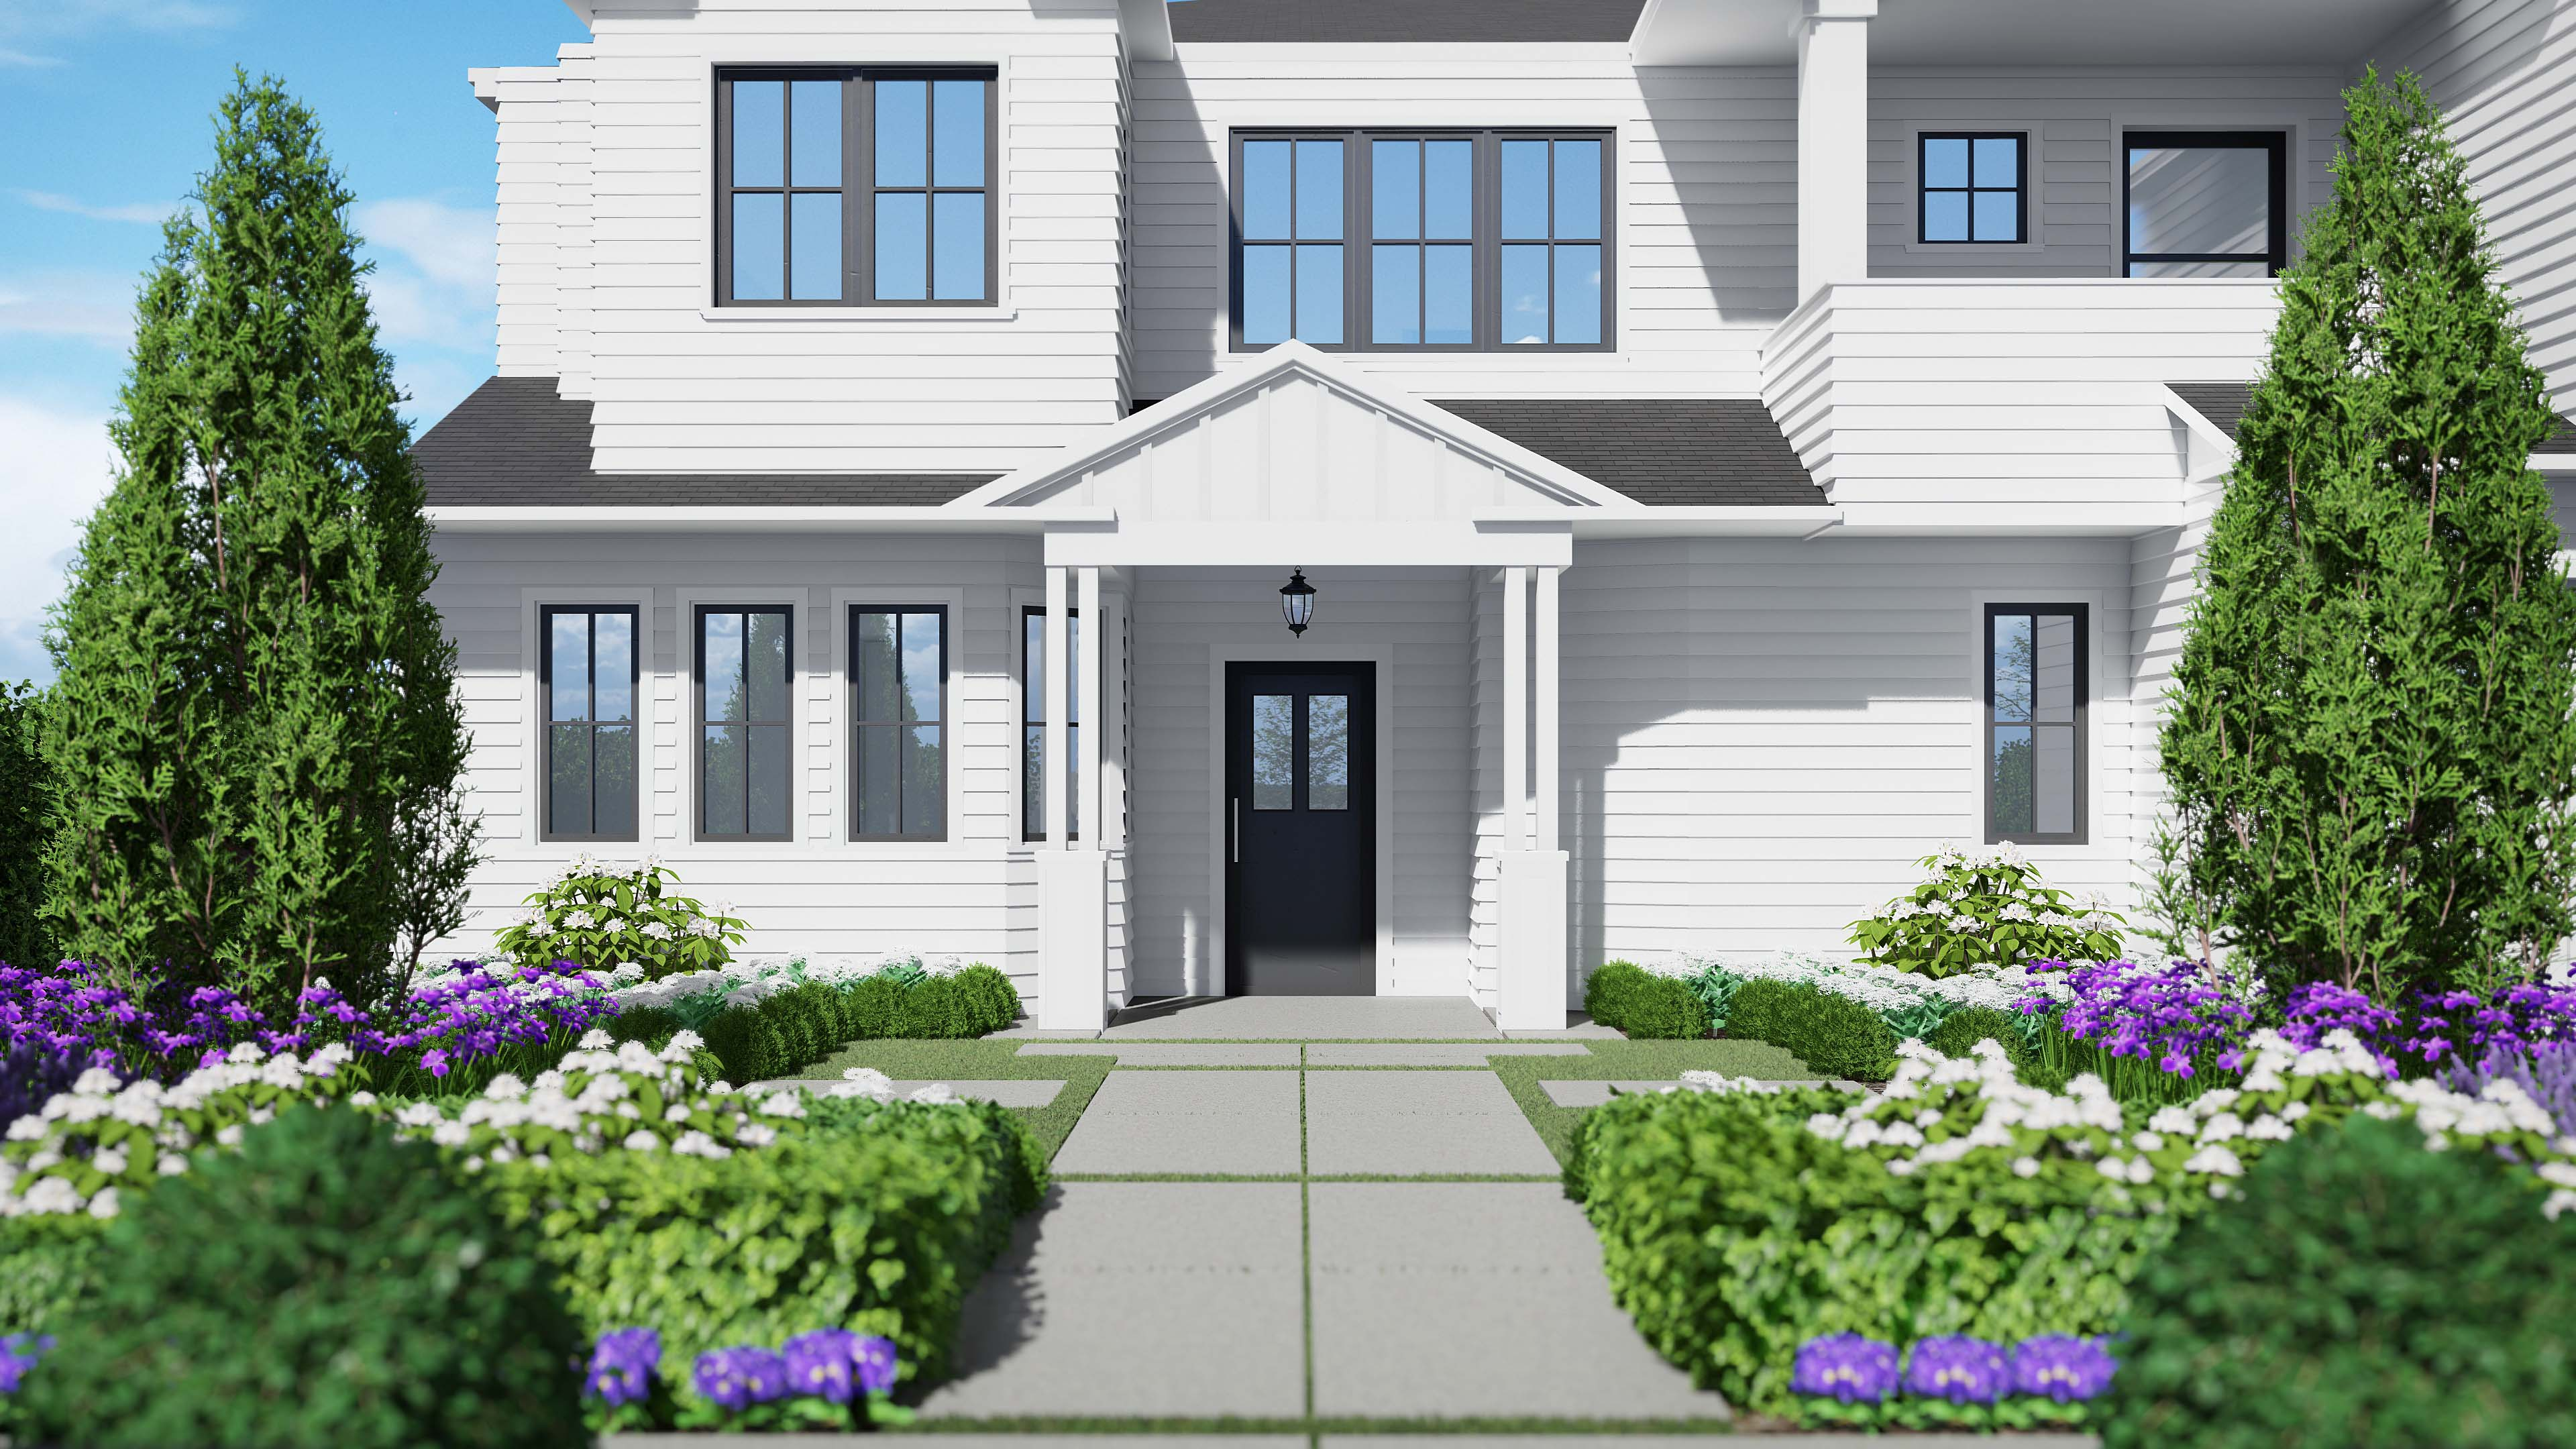 Exterior Landscaping_Front entry